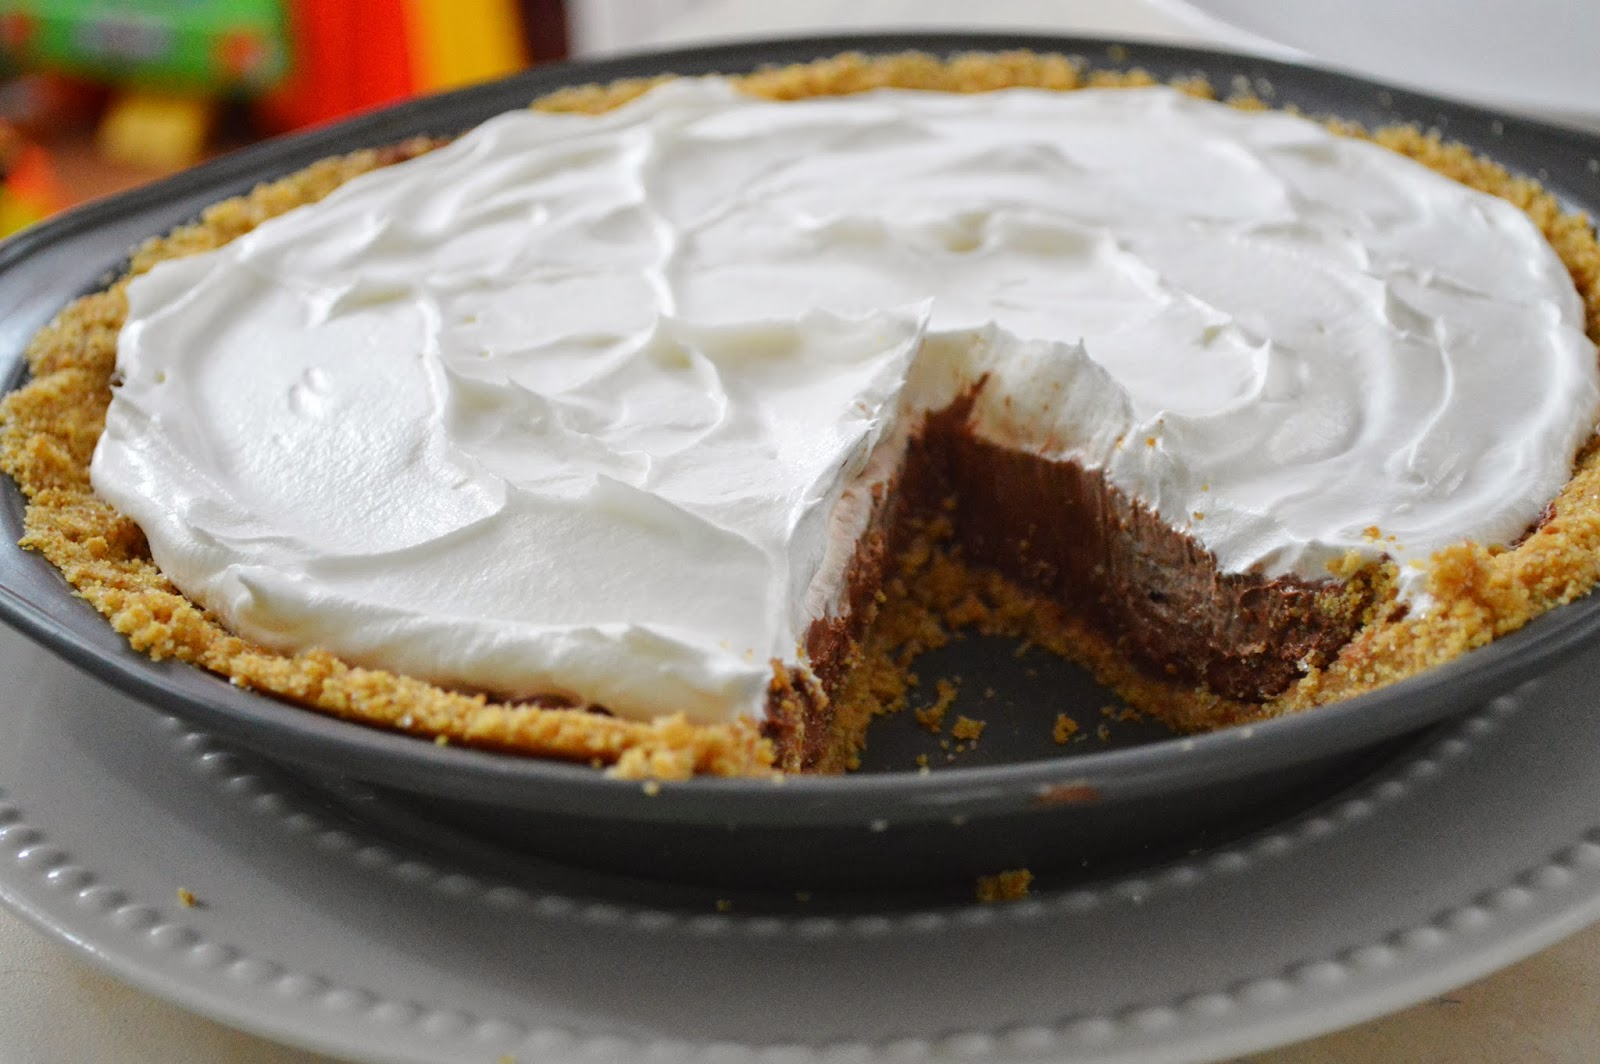 The Art of Comfort Baking: Double Layer Chocolate Cream Pie